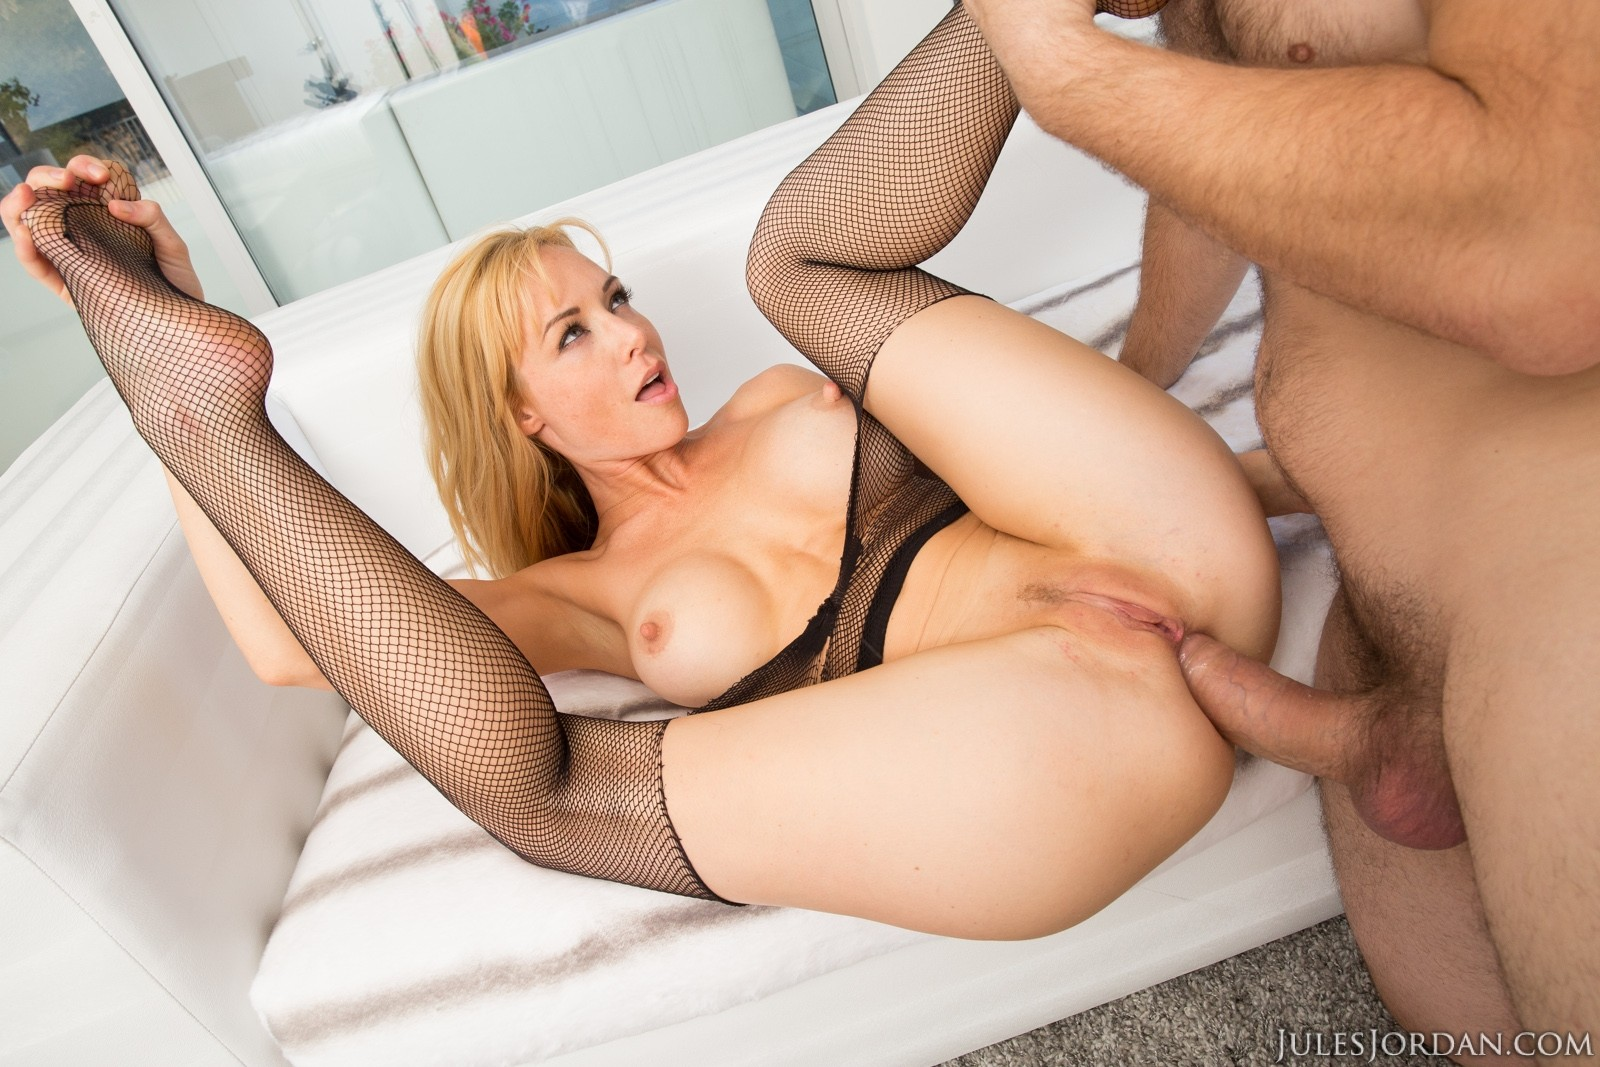 cayden cross dream porn